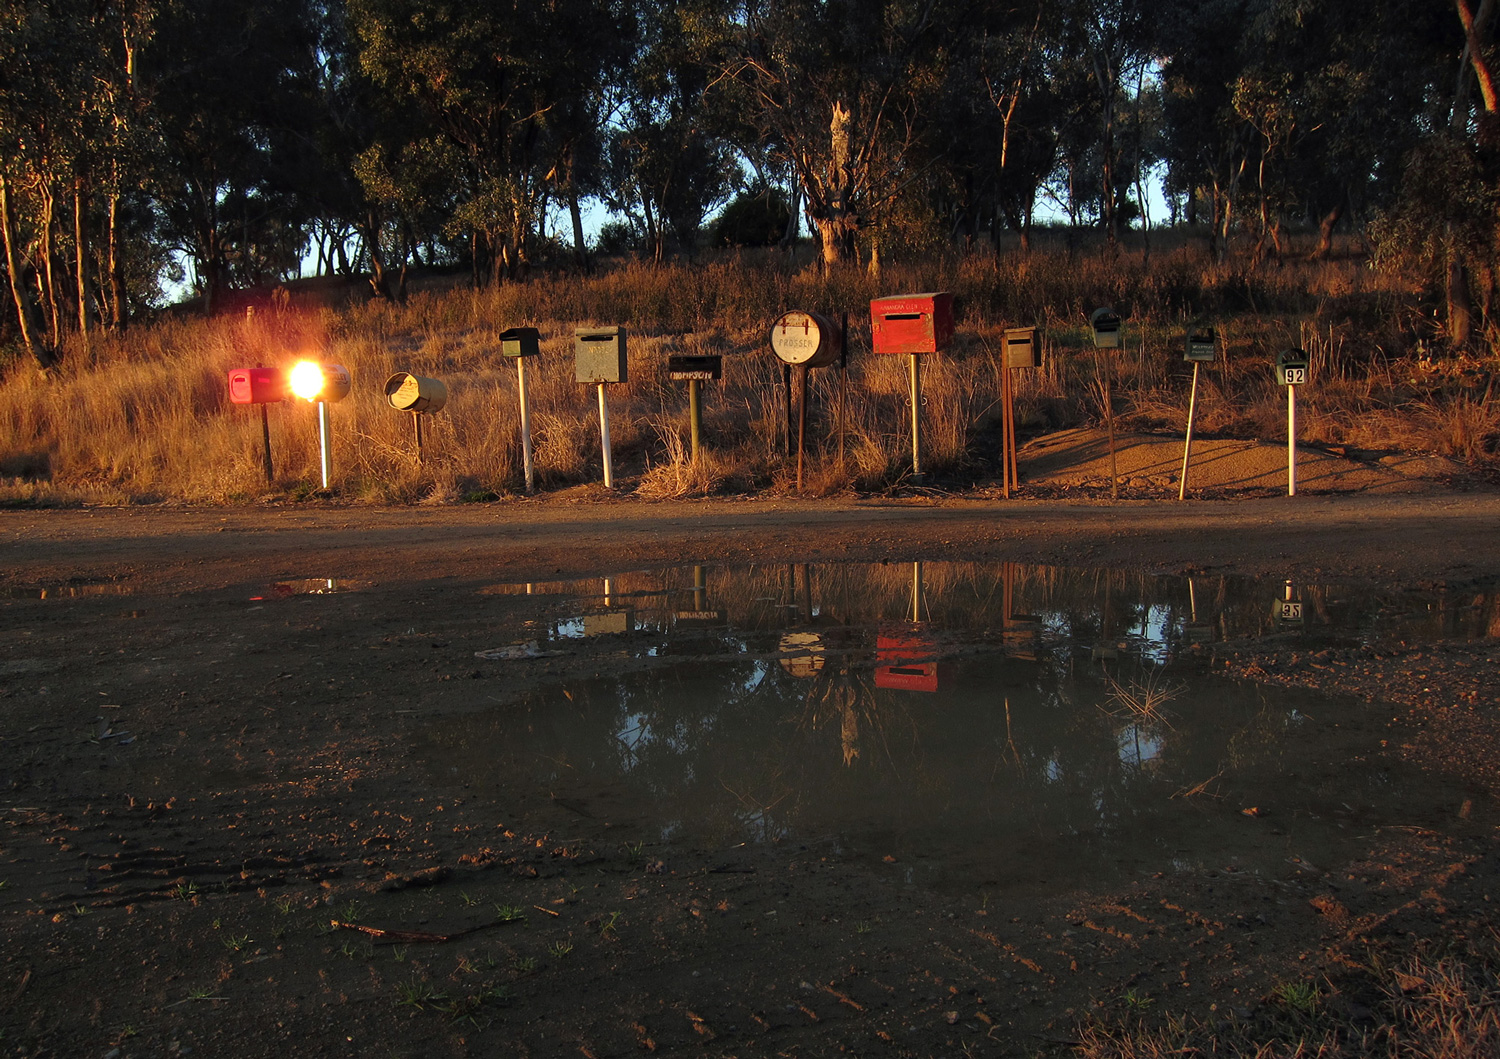 Mailboxes-near-the-'Centre-for-World-Friendship'-monument,-Cowra-2011.jpg